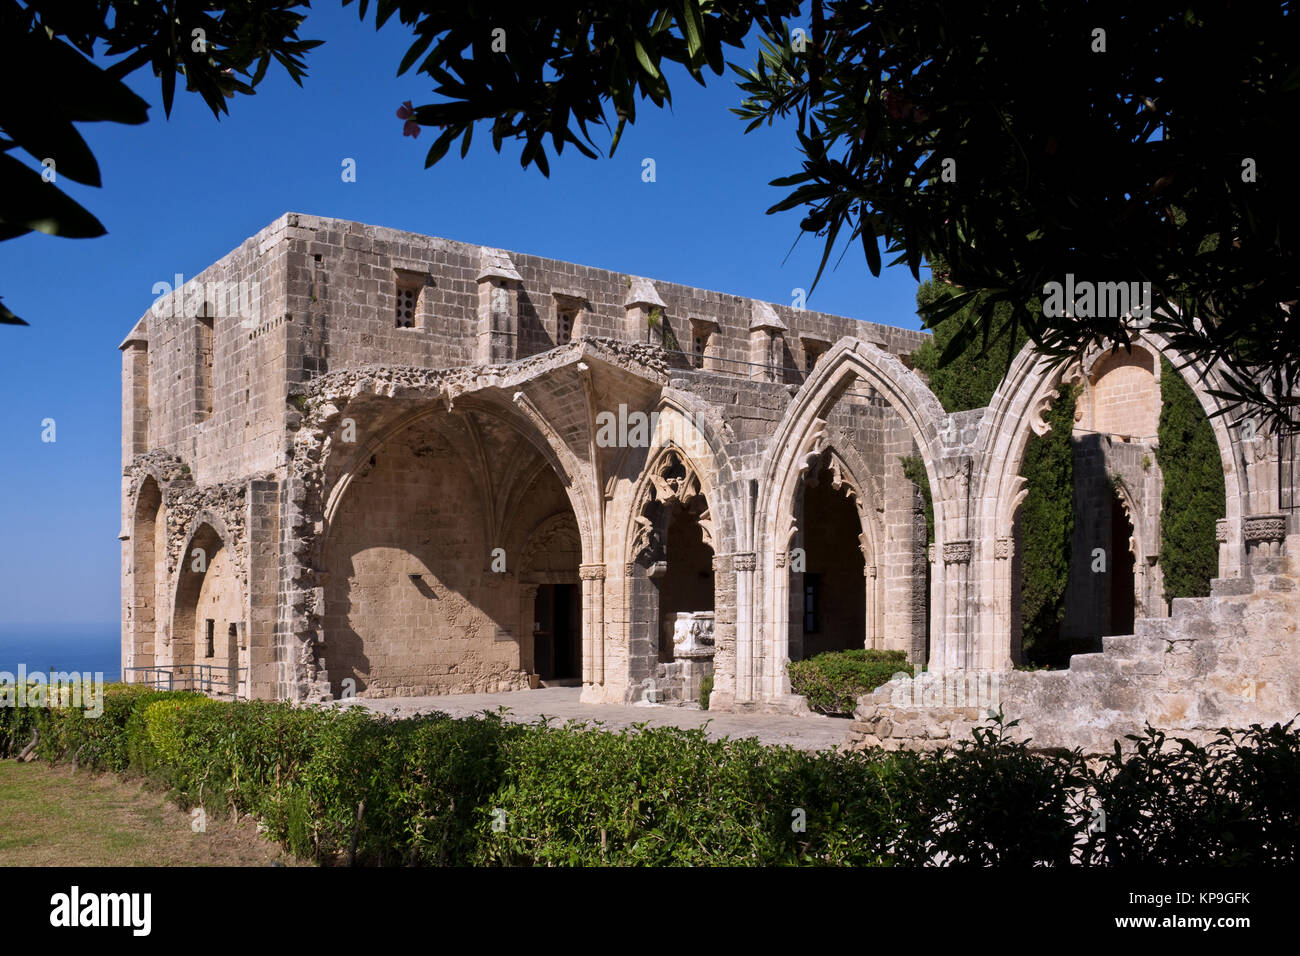 The Gothic monastery at Bellapais (Abbaye de la Paix) in the Turkish Republic of Northern Cyprus. - Stock Image